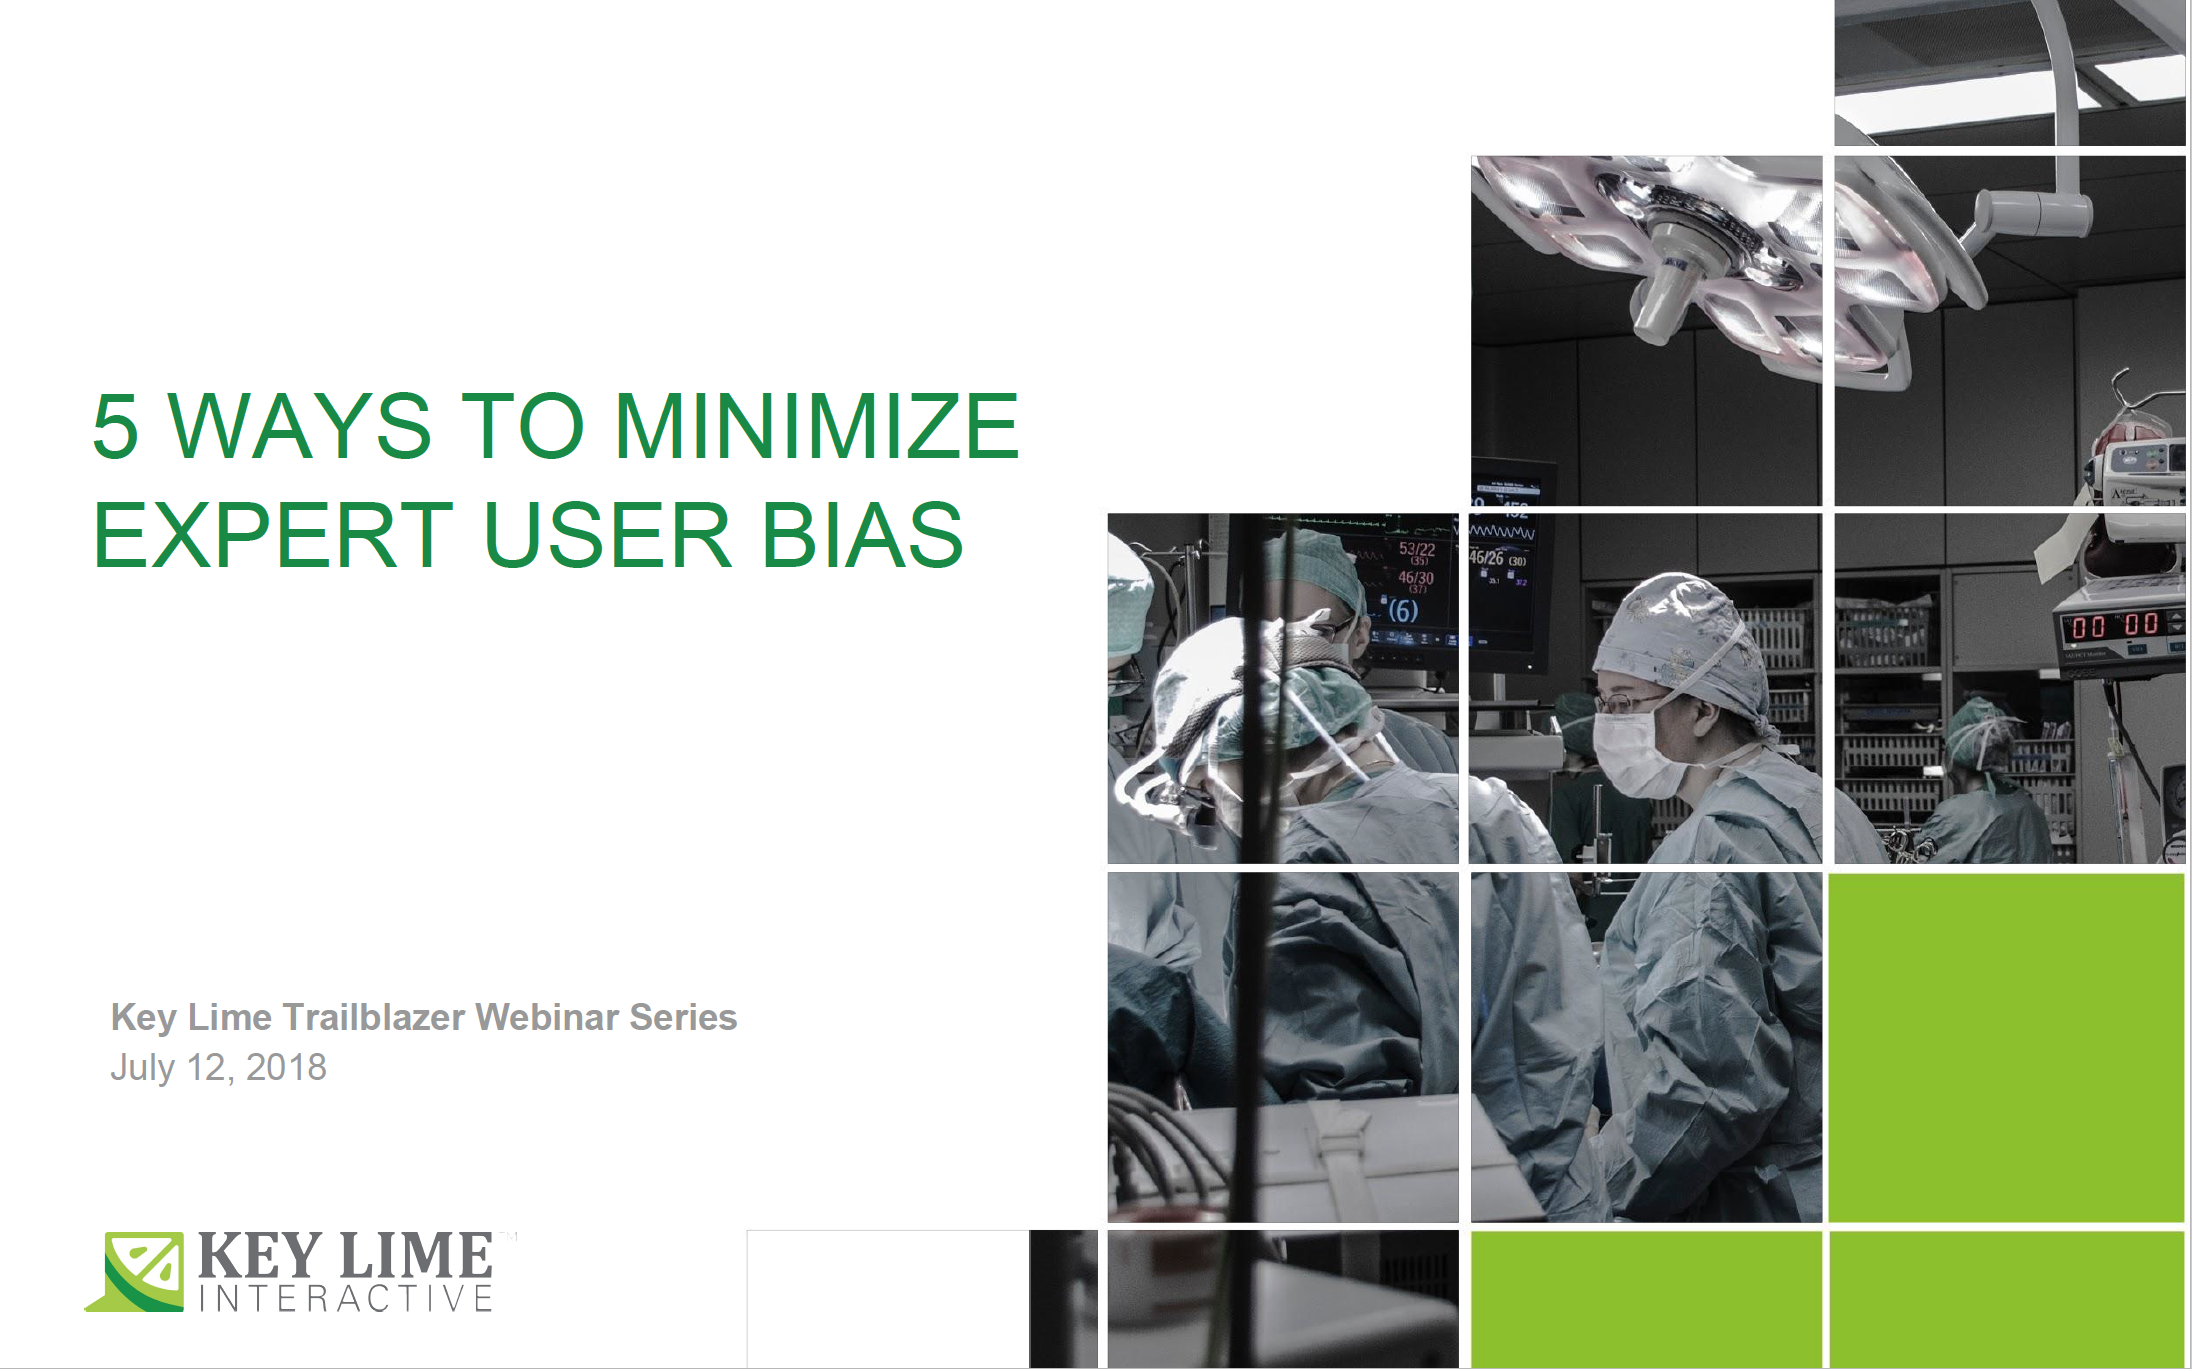 5-ways-to-minimize-expert-user-bias-article-blog-webinar